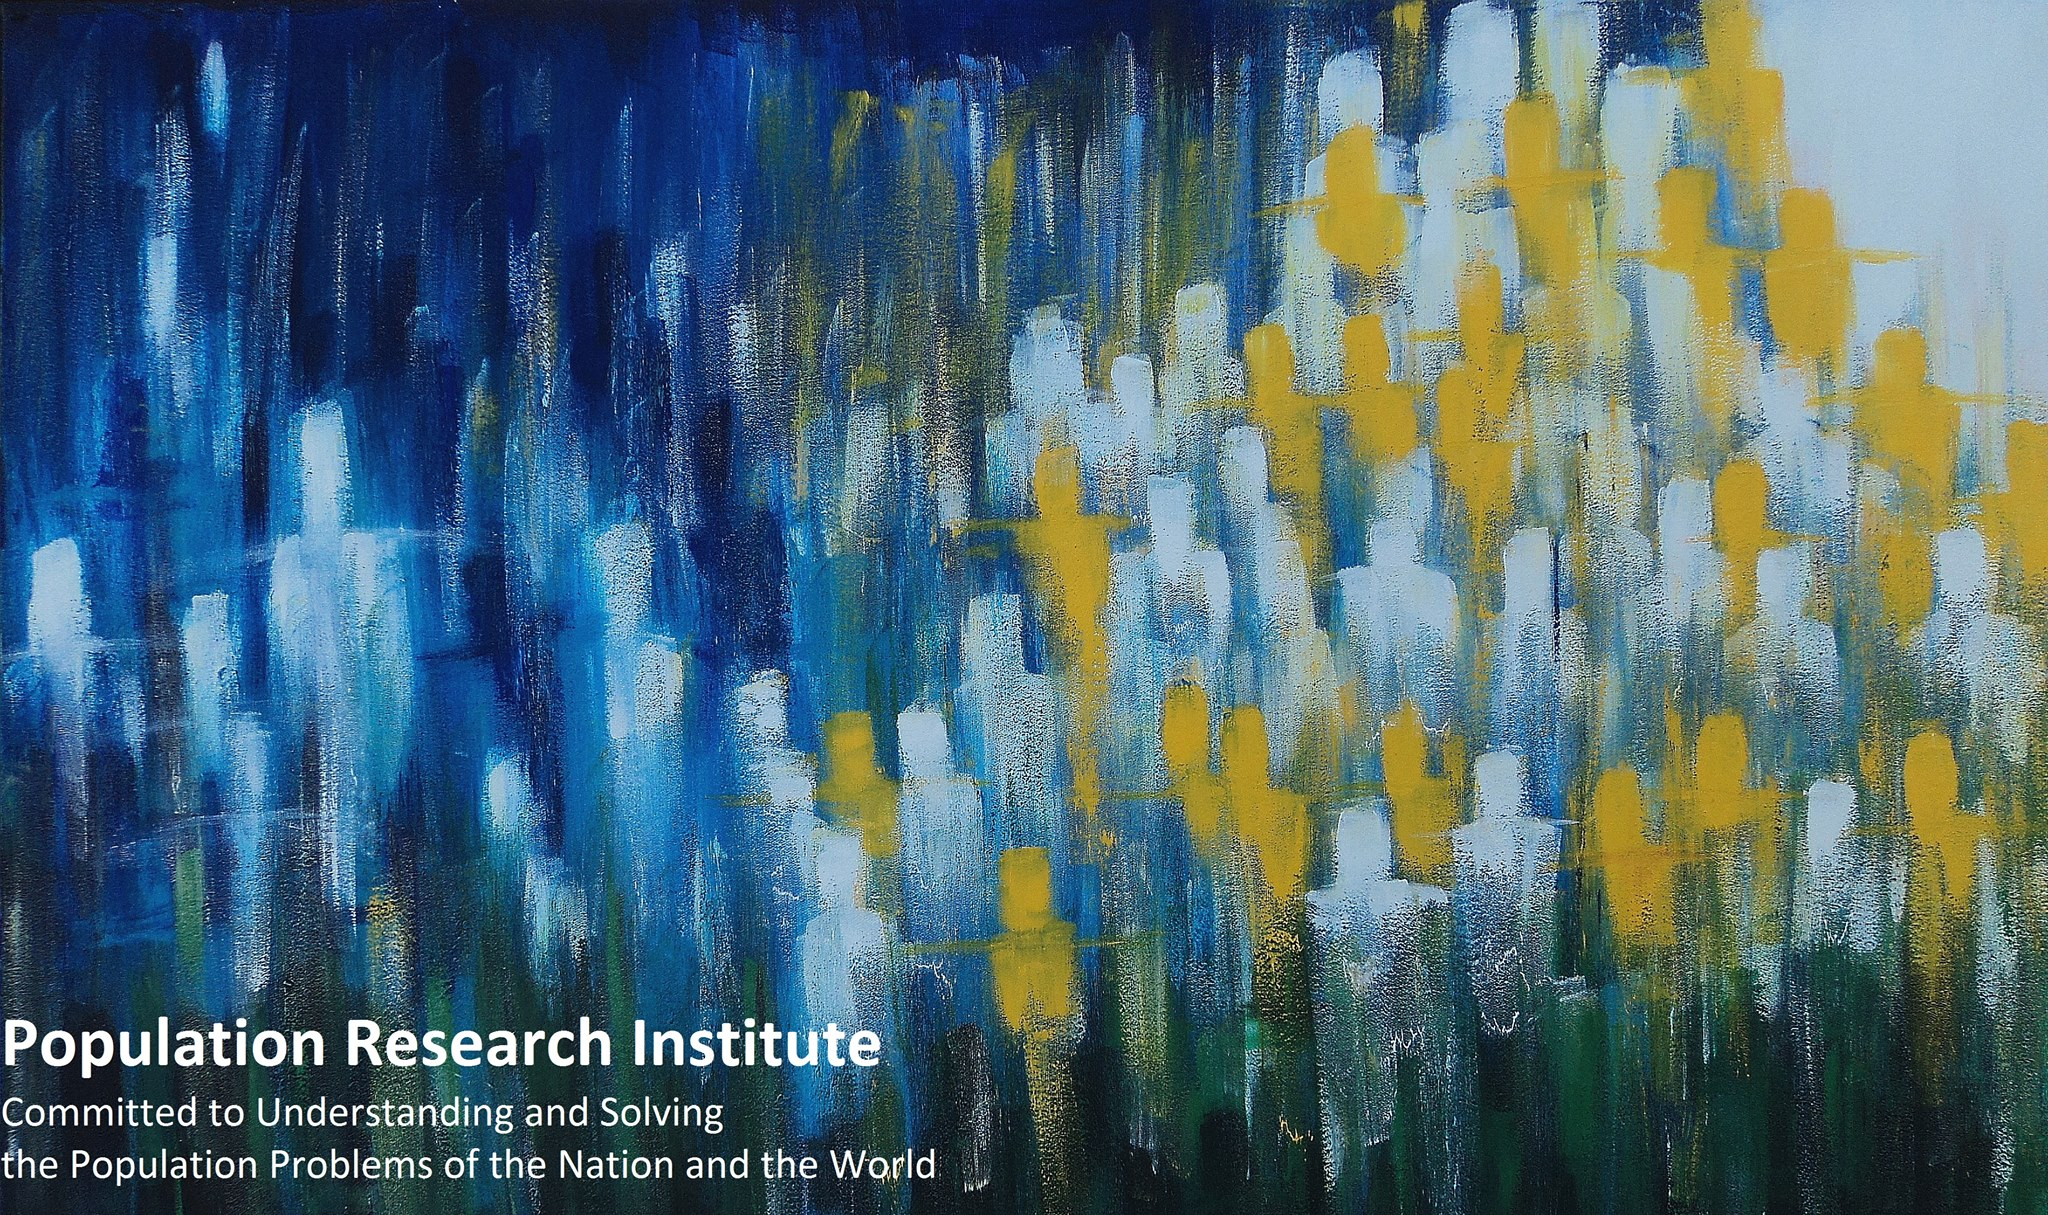 Population Research Institute: Committed to Understanding and Solving the Population Problems of the Nation and the World.